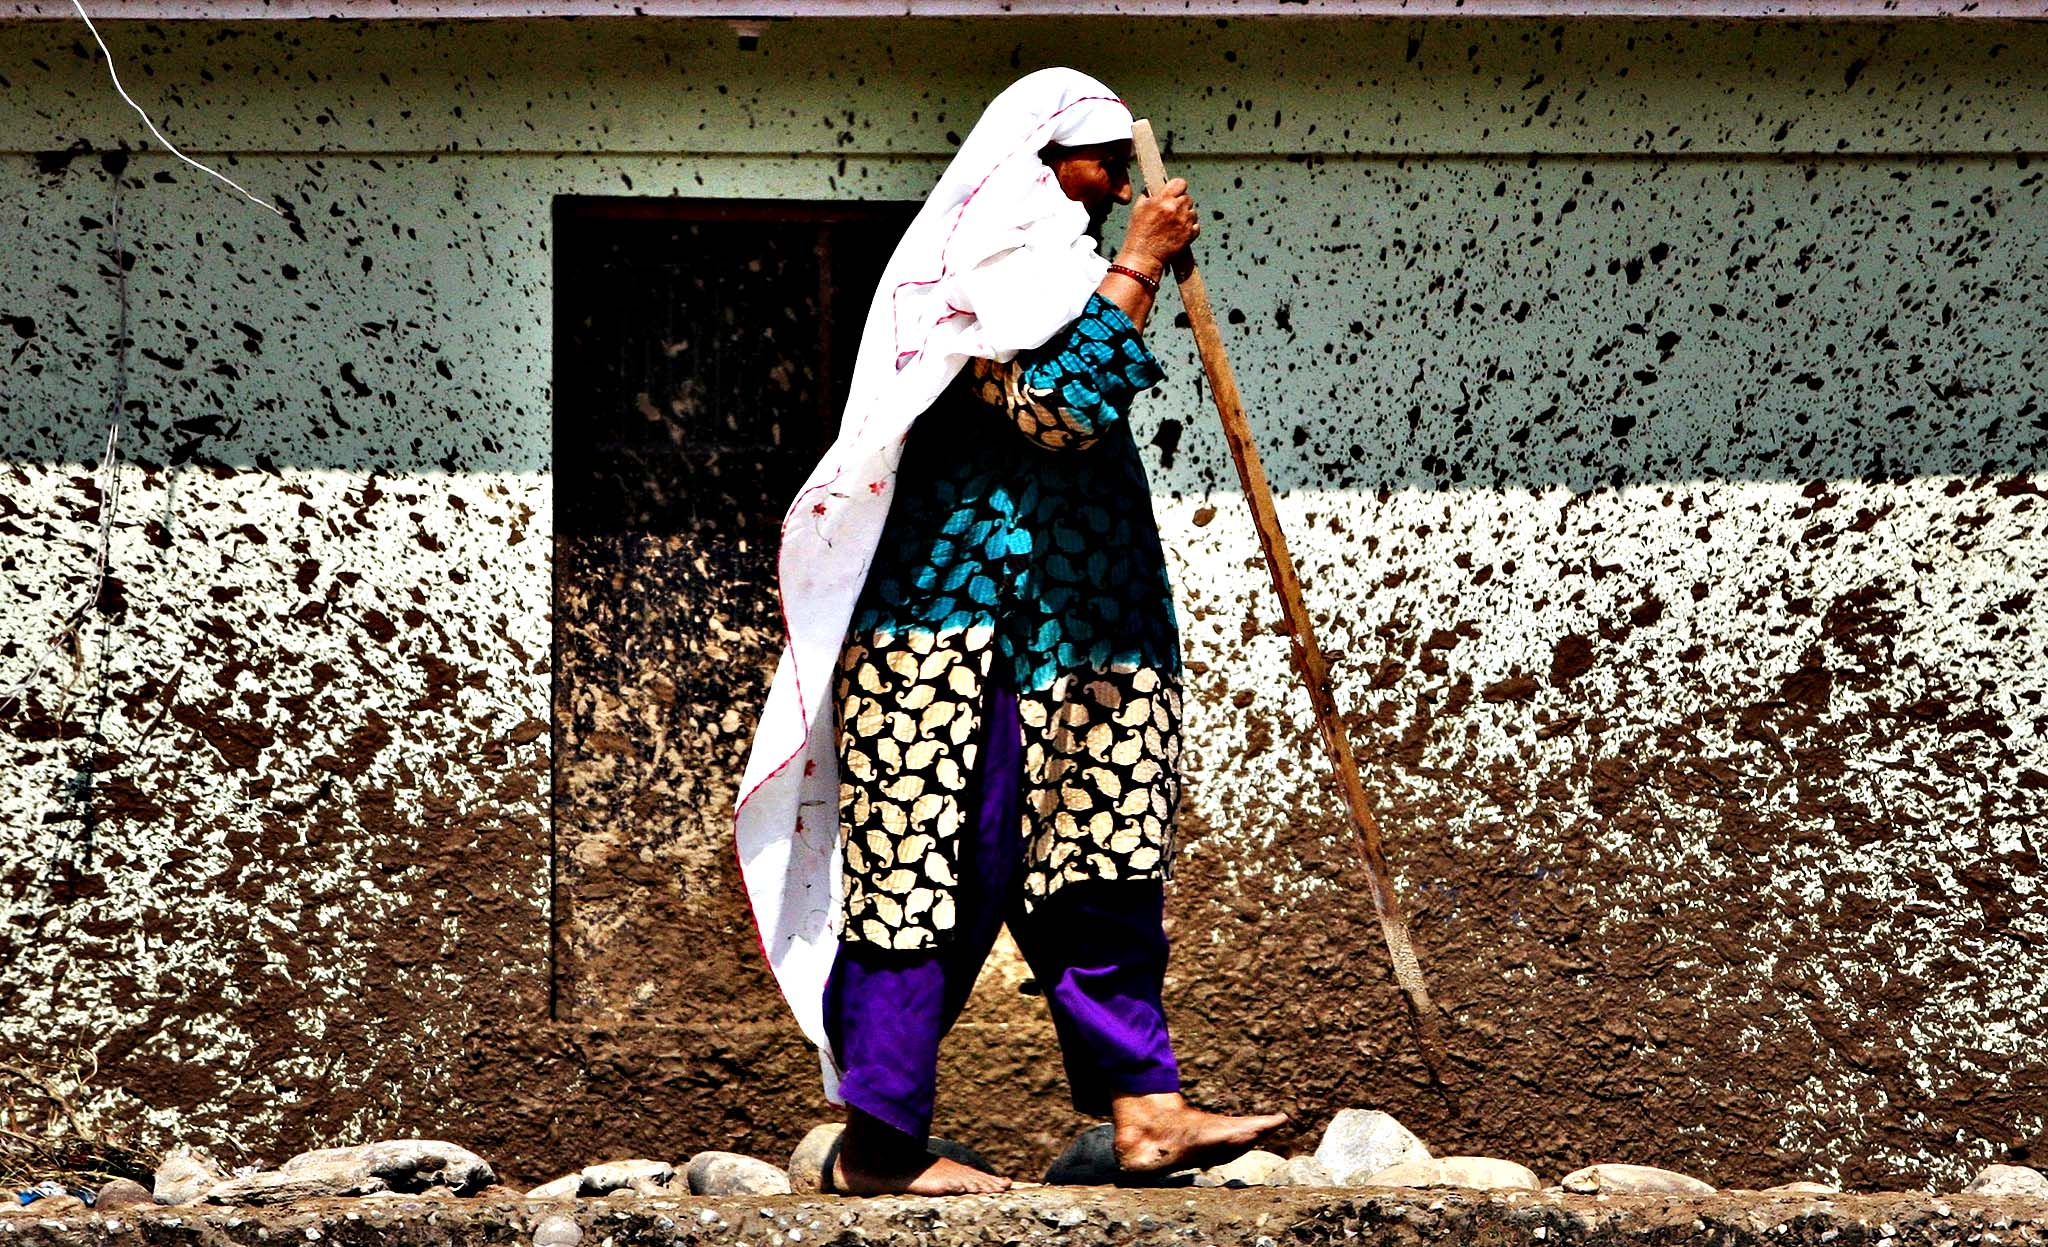 An Indian woman walks near her house that was damaged in floods on the banks of the Tawi River in Jammu, India, Monday, Sept. 8, 2014. Six days of rains in Indian Kashmir have left more than 120 people dead in the region's worst flooding in more than five decades, submerging hundreds of villages and triggering landslides, officials said.